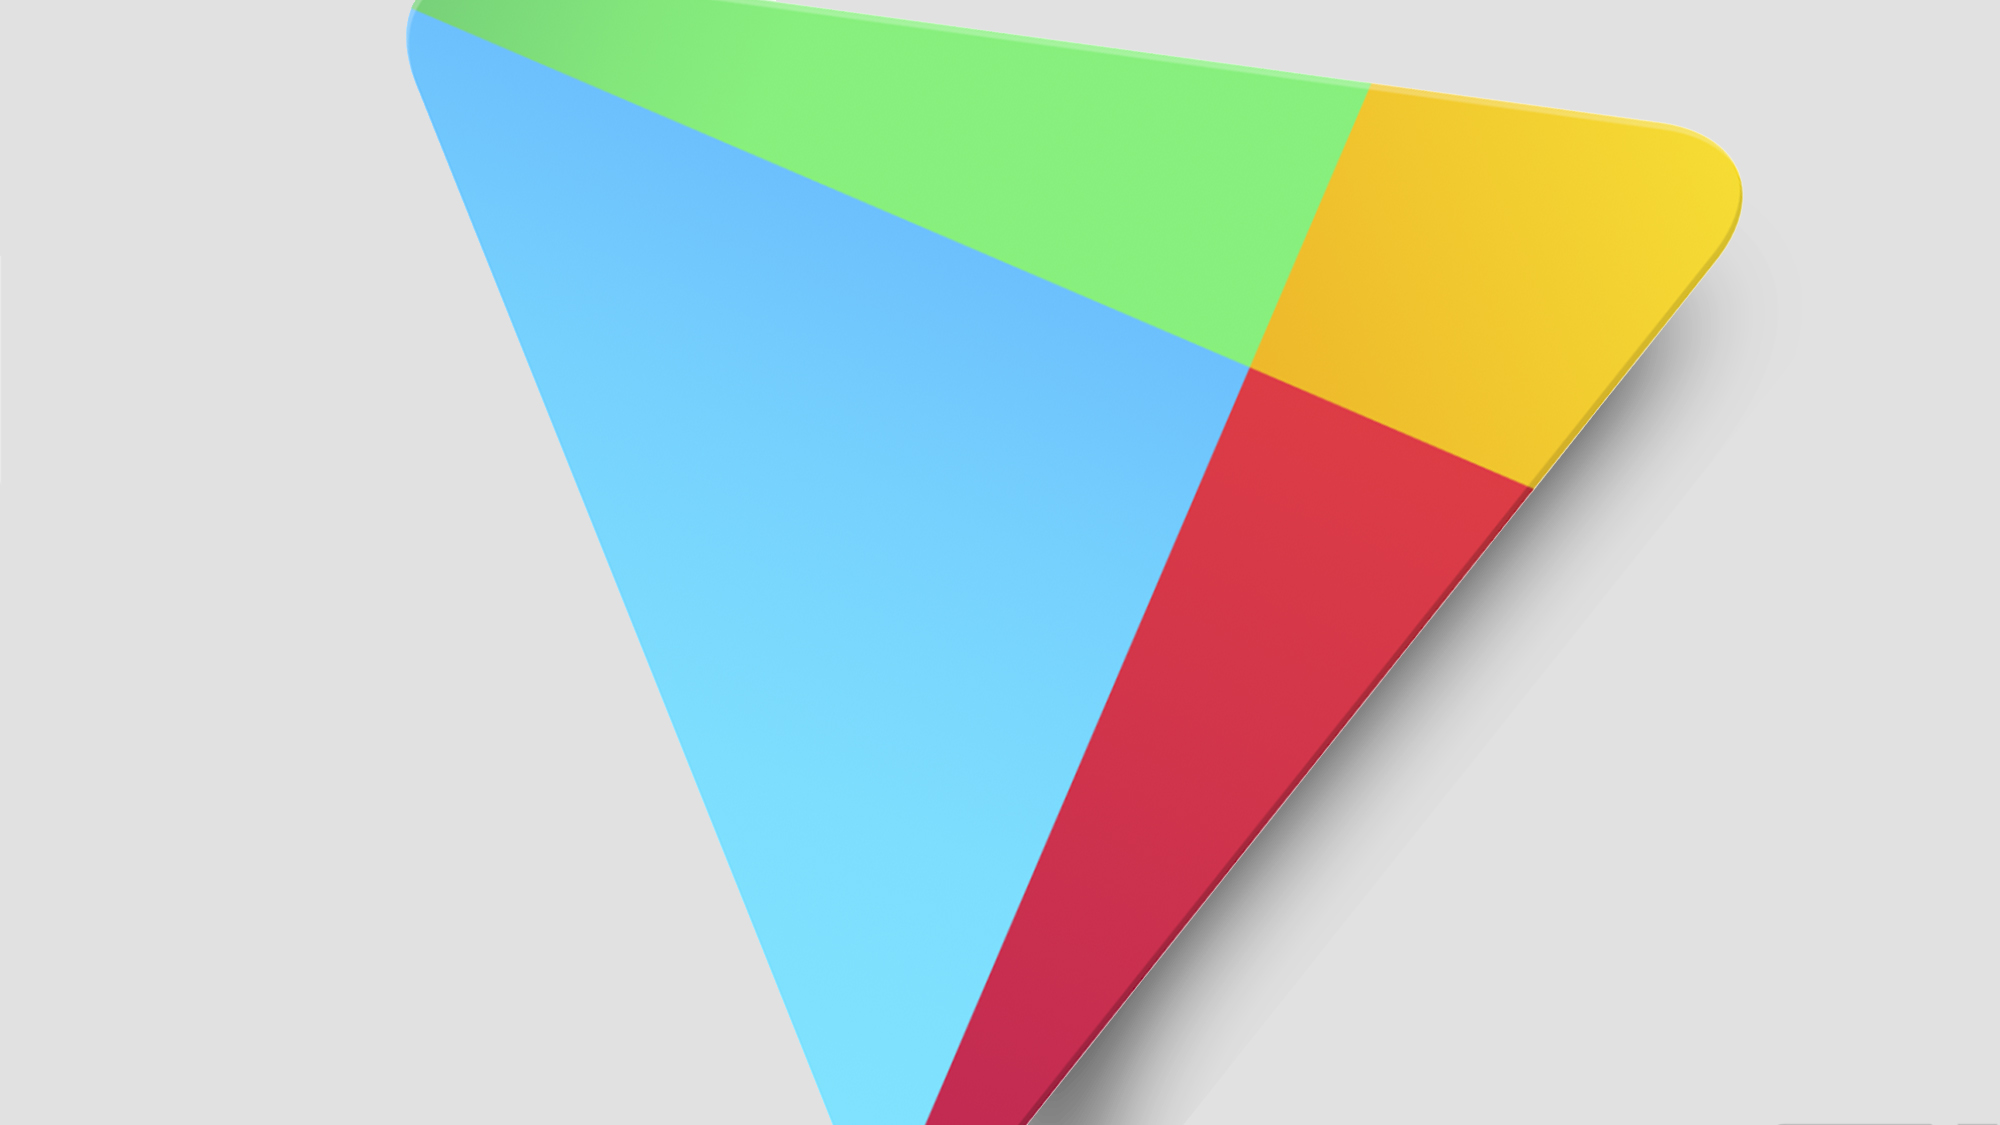 Google Play Store rolls out Dark Mode